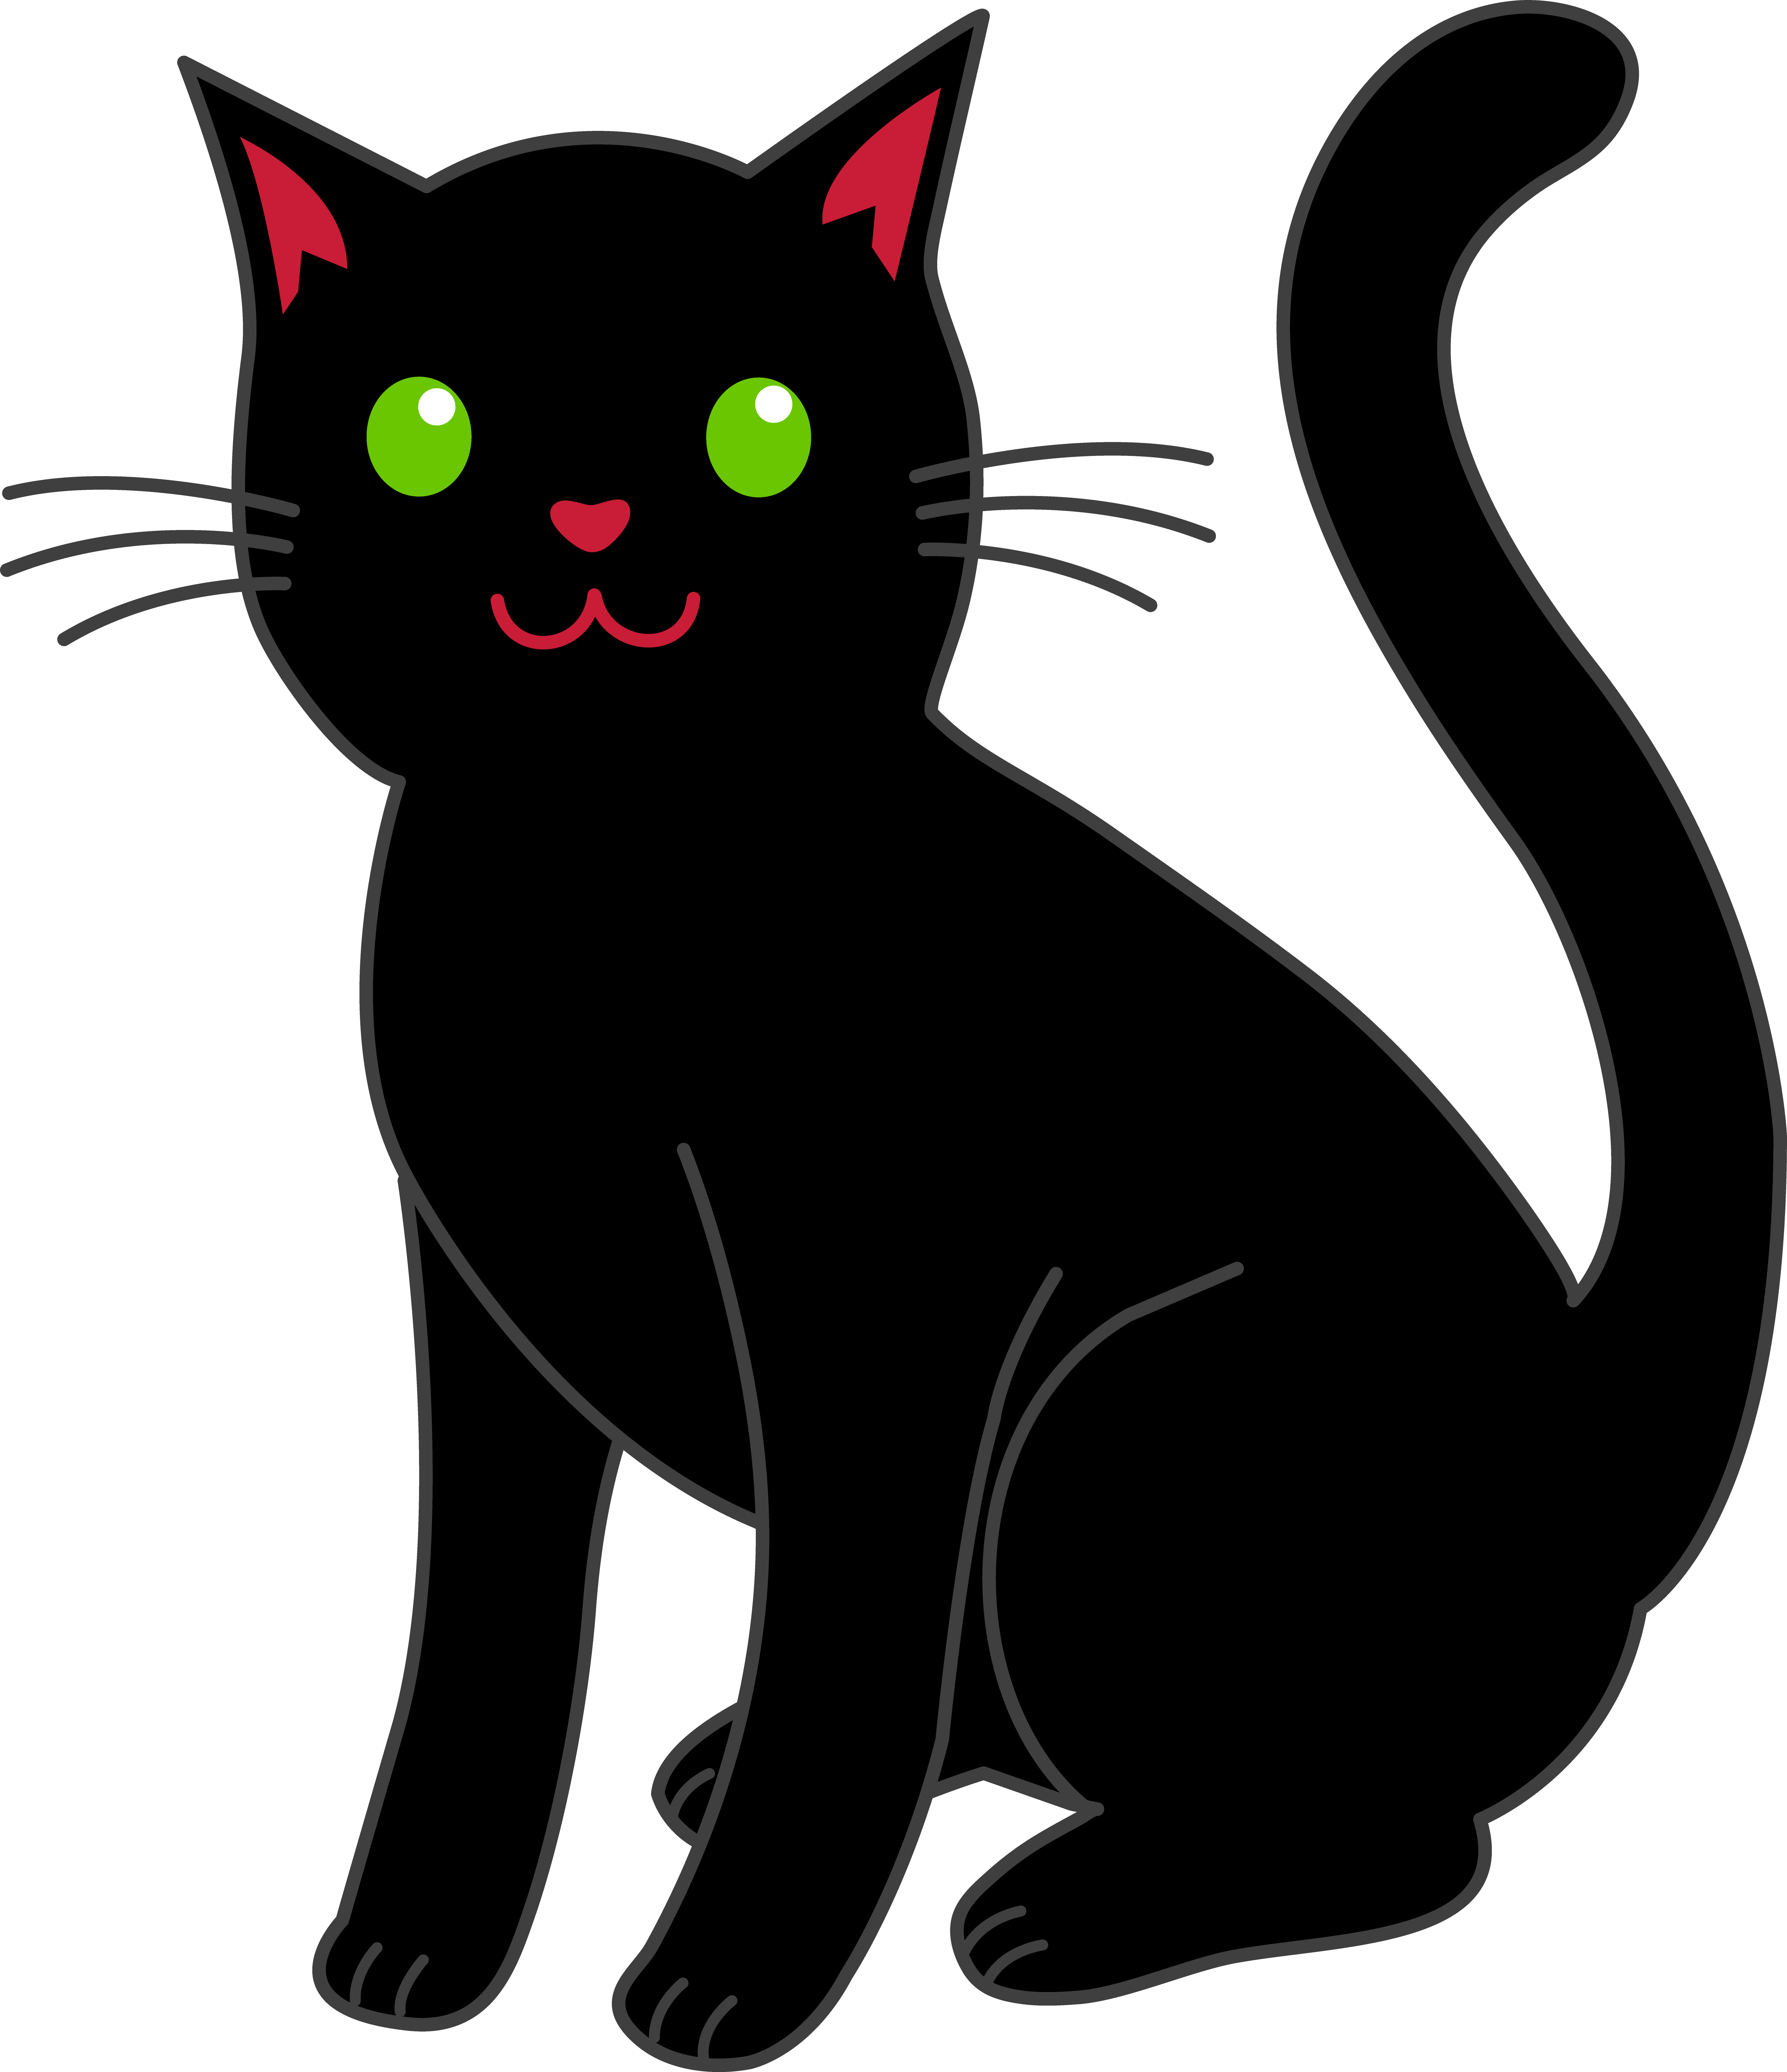 Free Cat Clipart Images Clipartall-Free cat clipart images clipartall-13